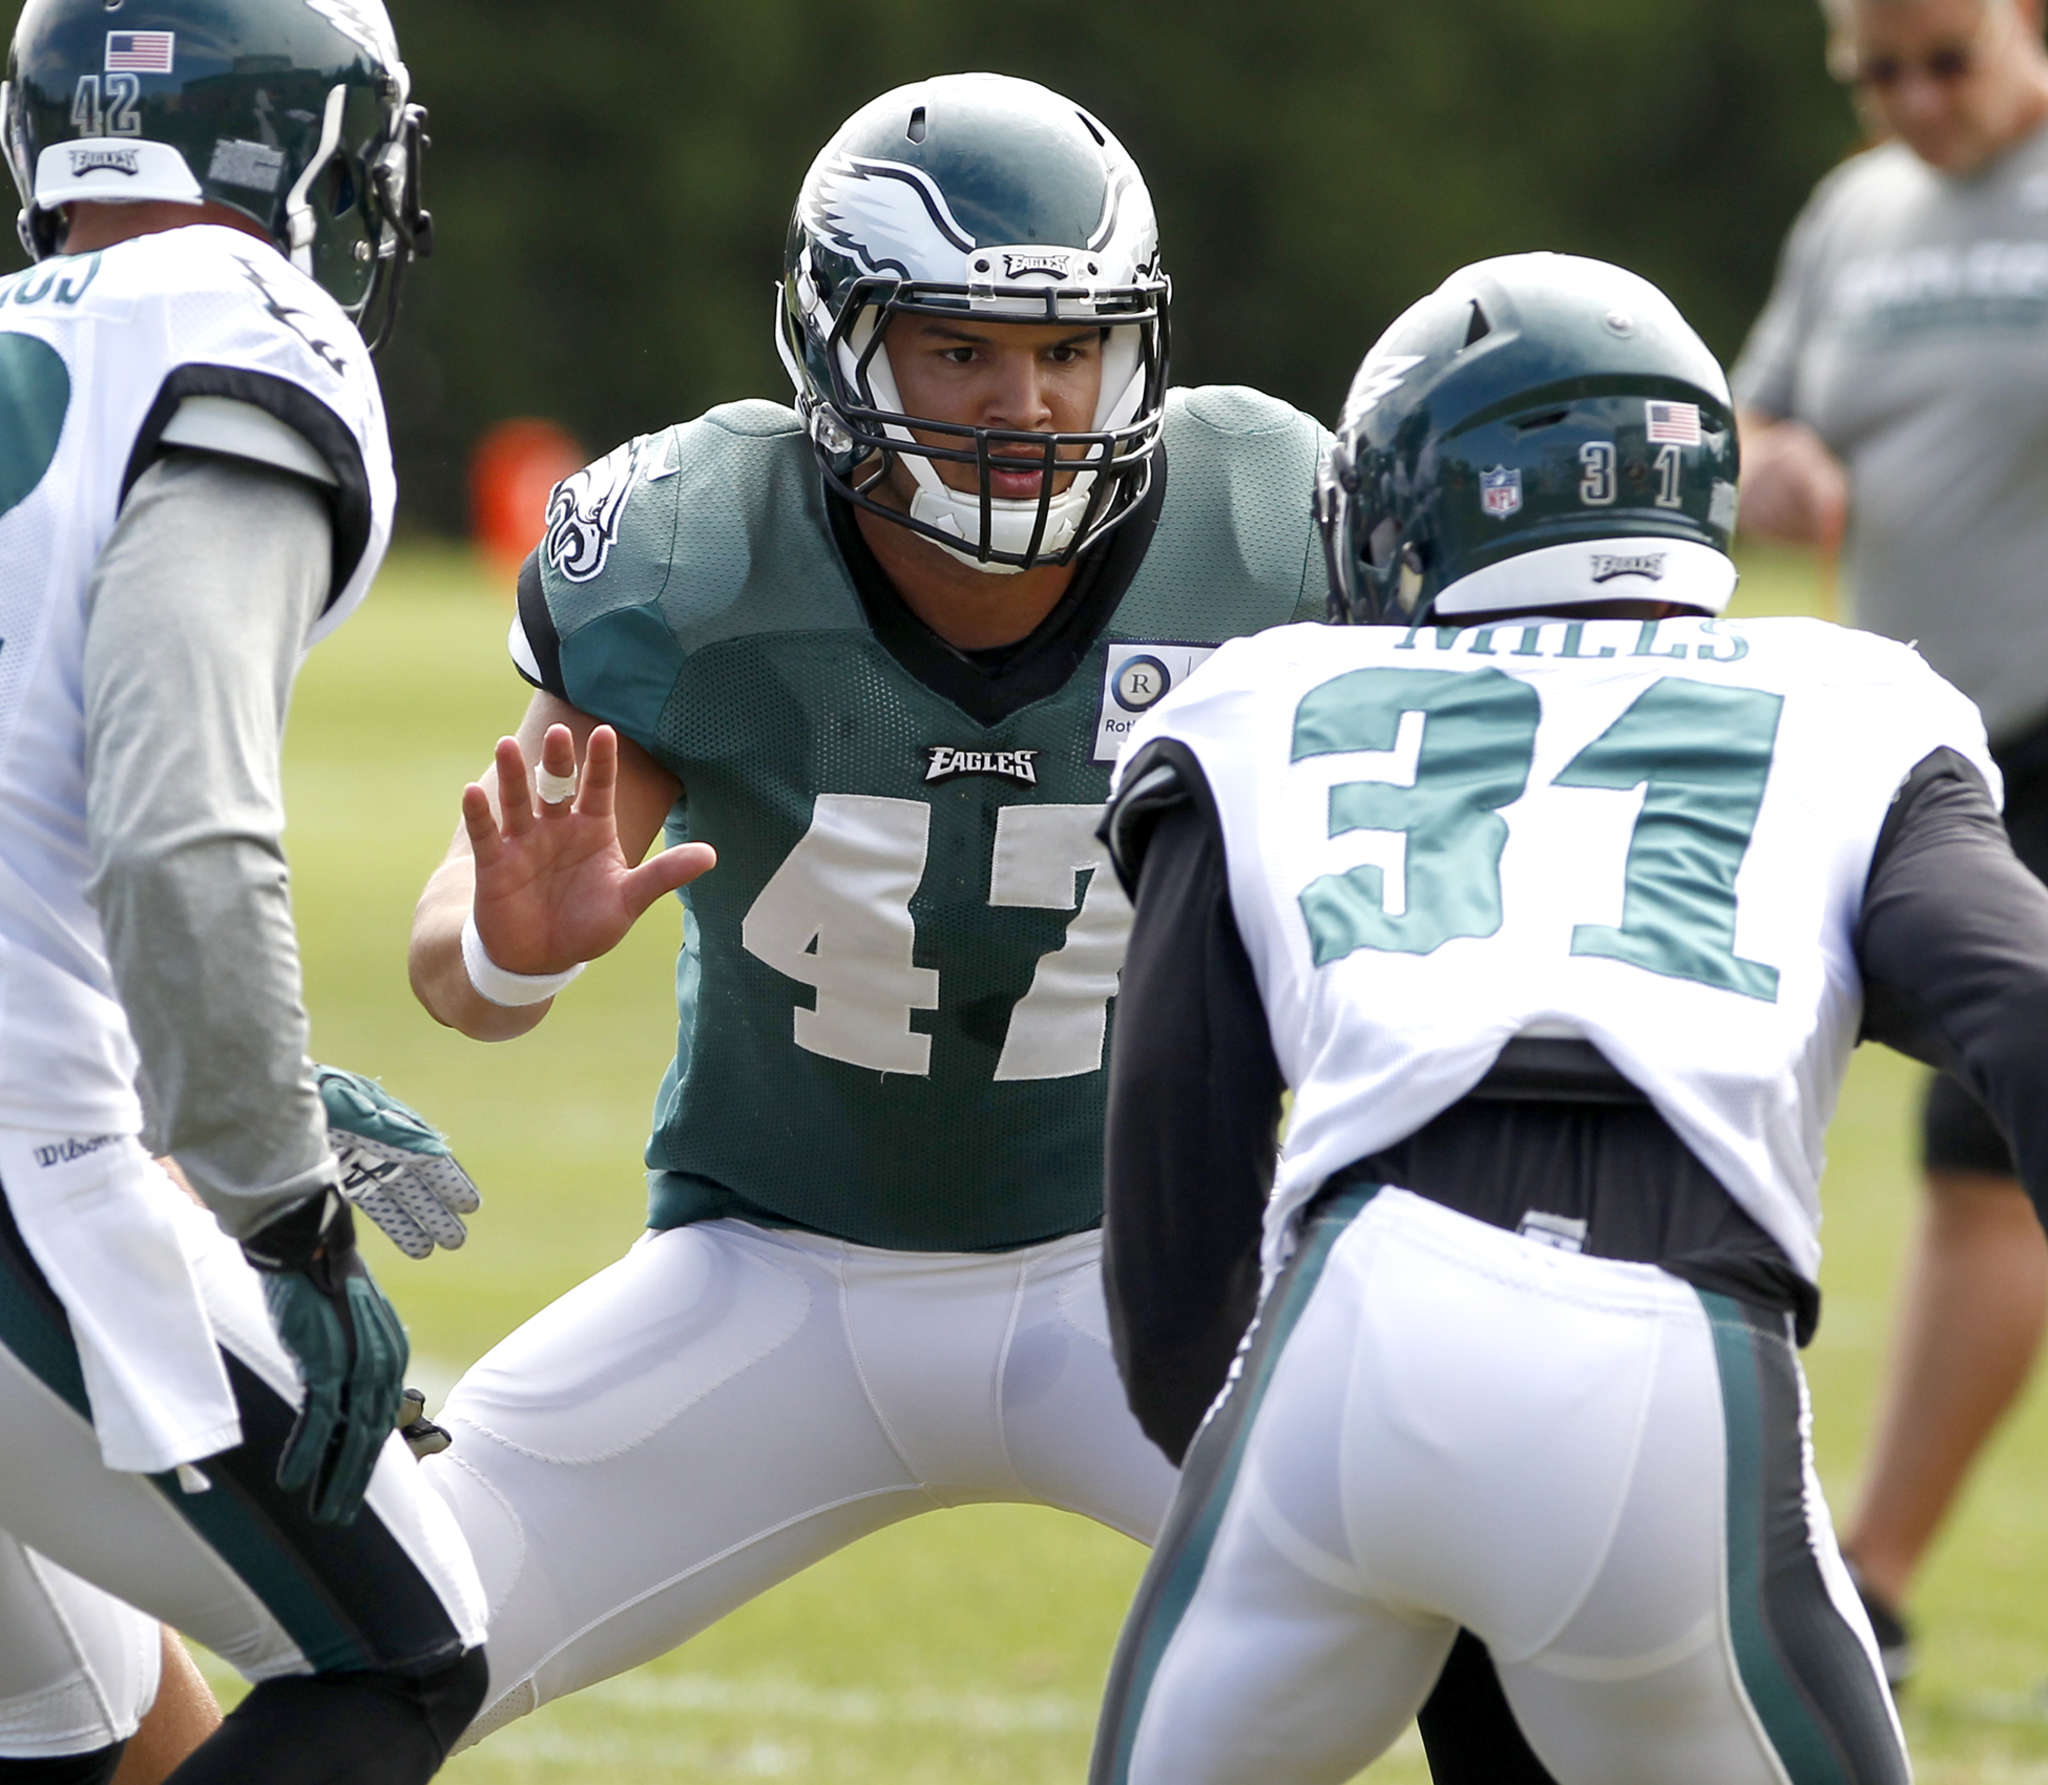 Trey Burton is focused on getting extended playing time against the Bears.